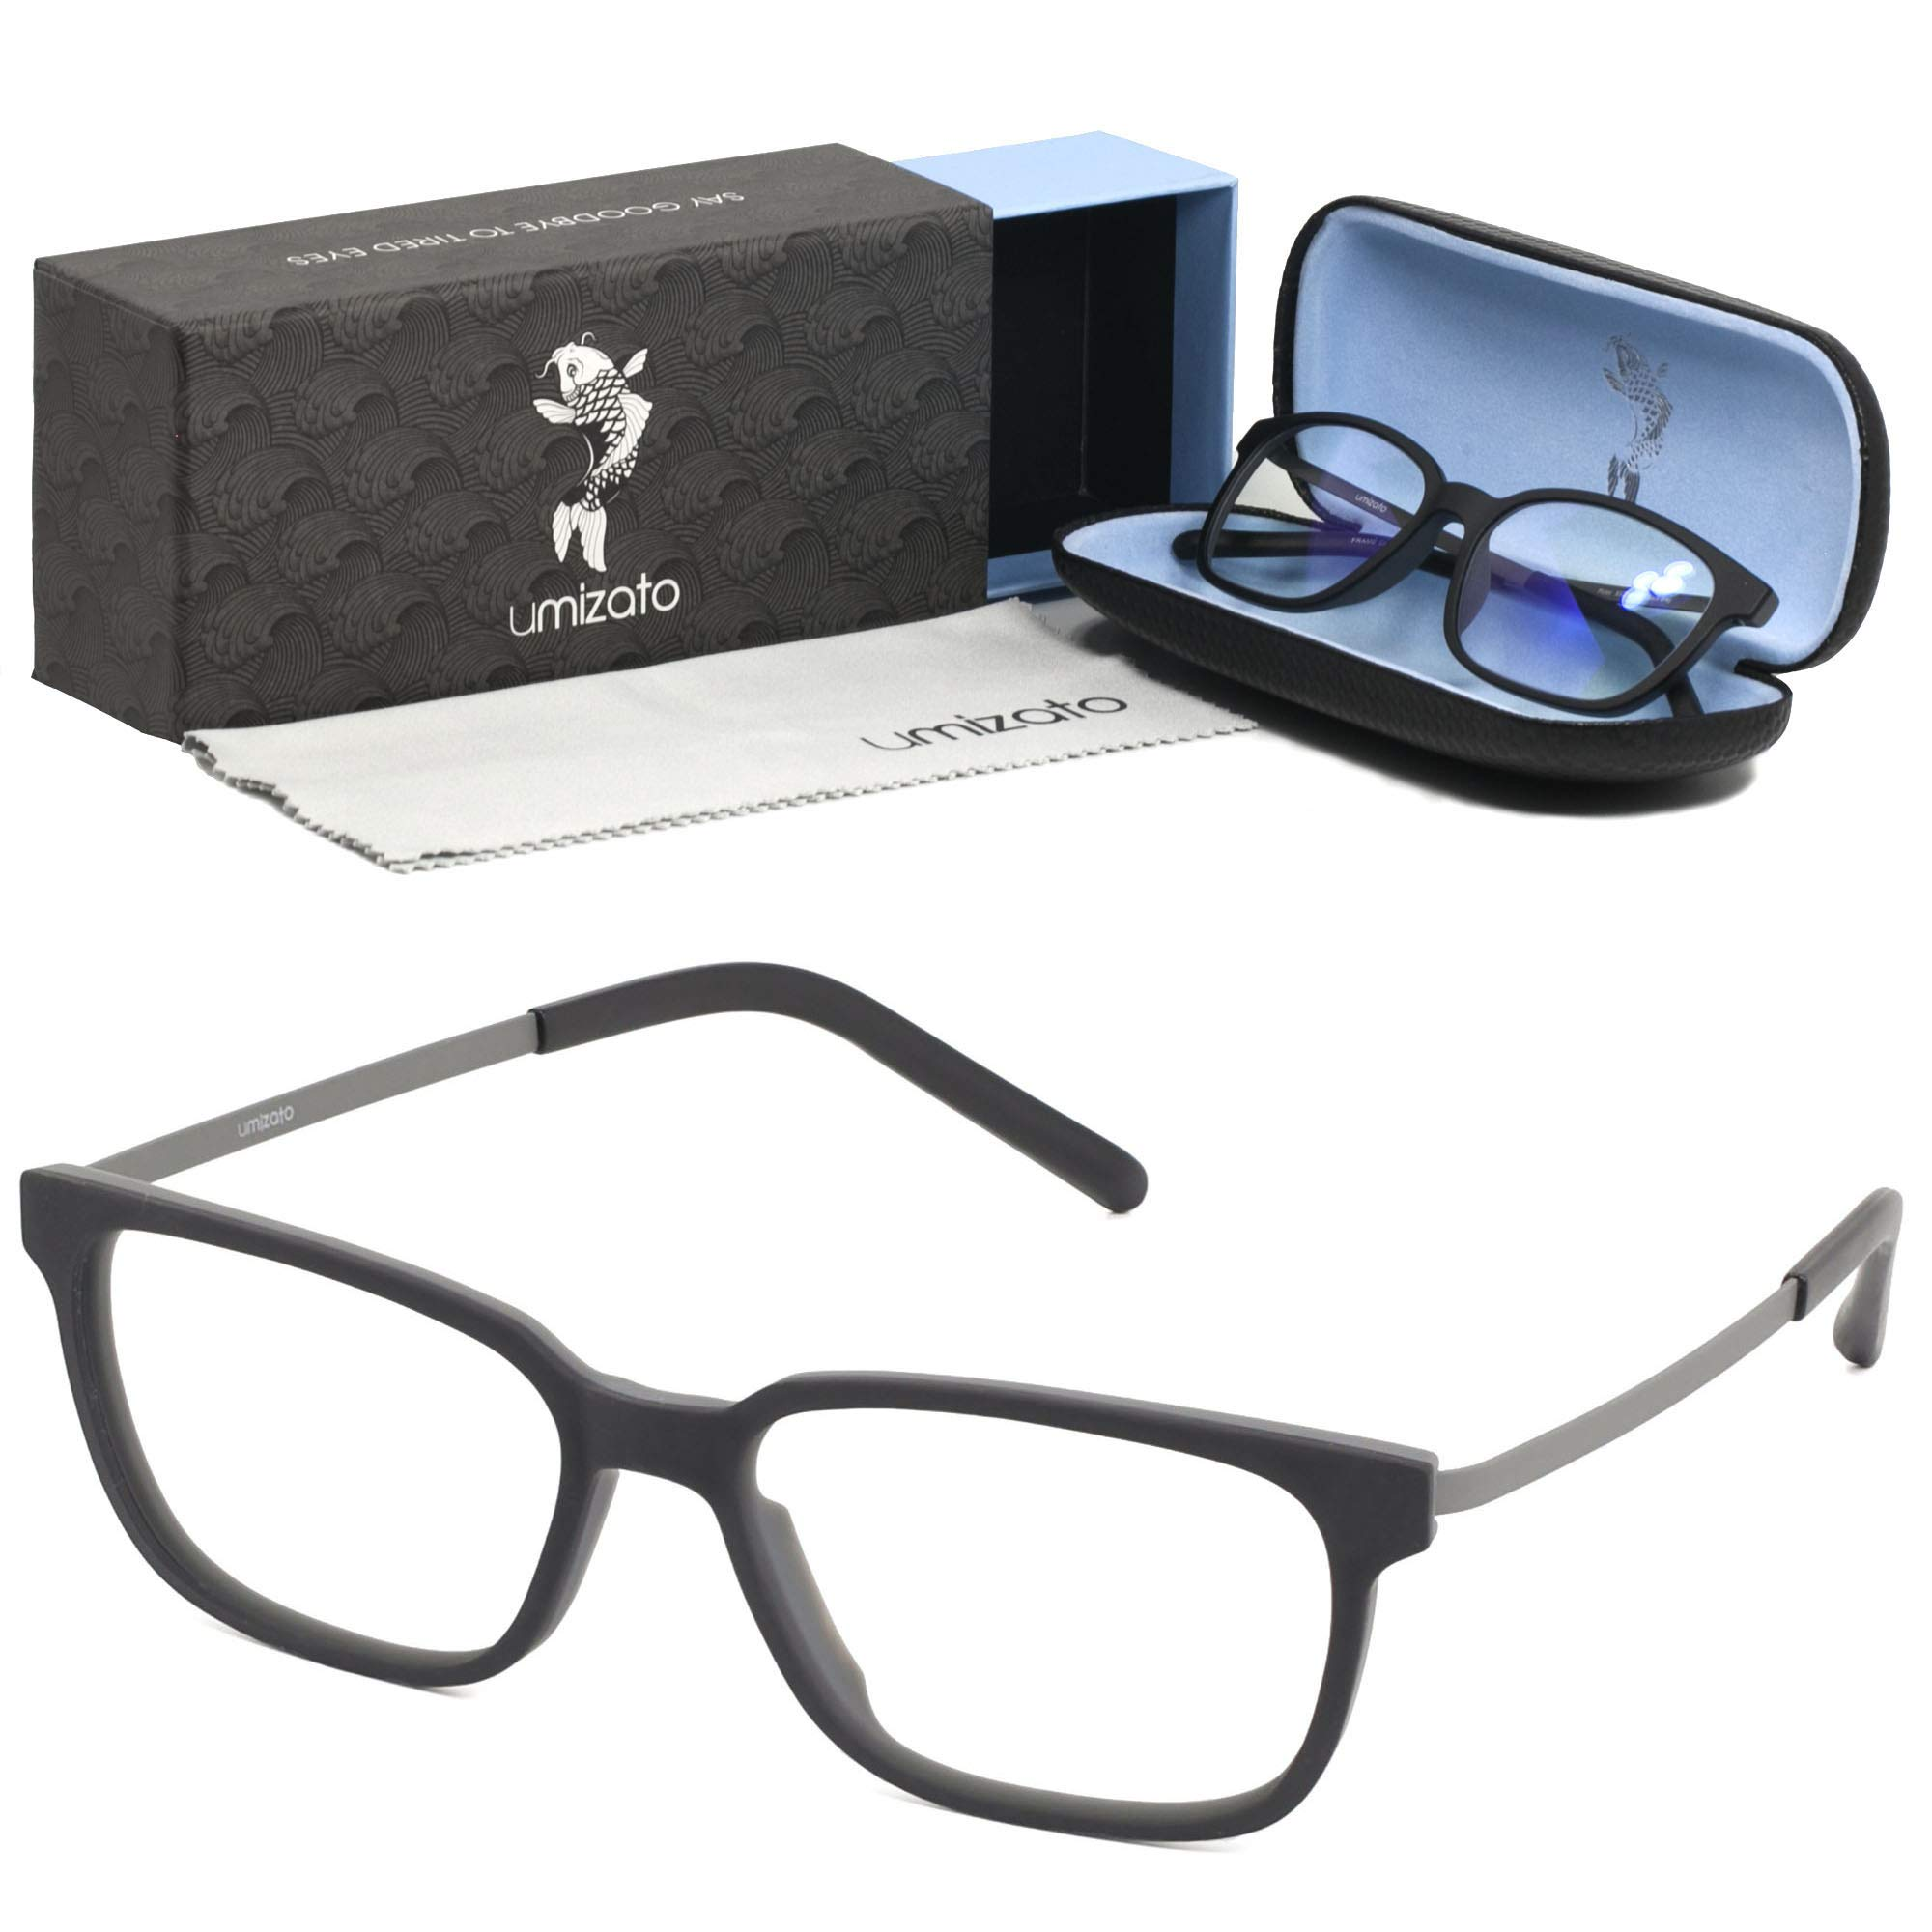 UMIZATO Computer Gaming Glasses Blue Light Blocking for Men Women Clear Lens, PC Accessories - FDA Approved - Relieves Digital Eye Strain, UV Blocker, Anti-Glare, Anti-Fatigue (Pictor in Black)